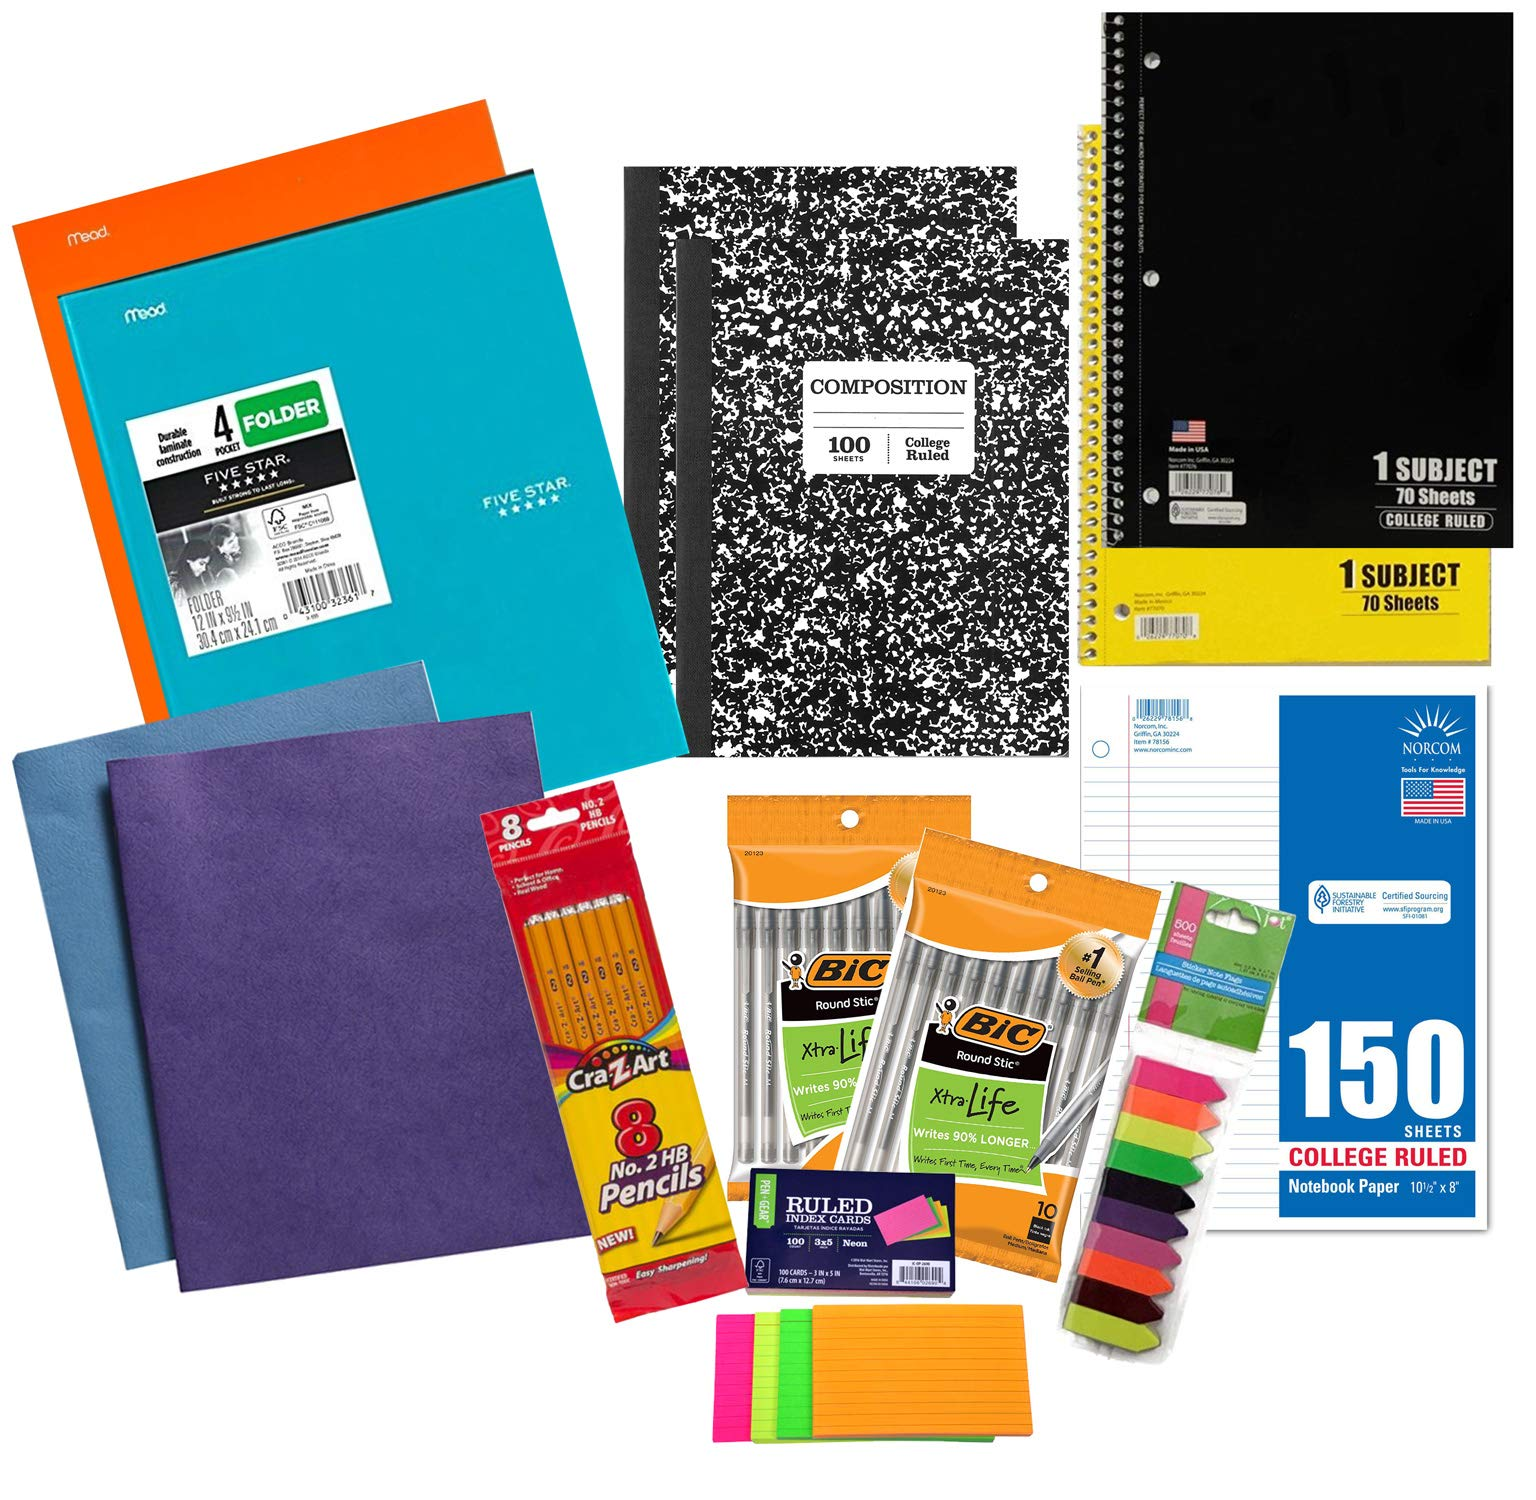 14 Piece School Supplies Middle to College Student Quick-Start Bundle Kit